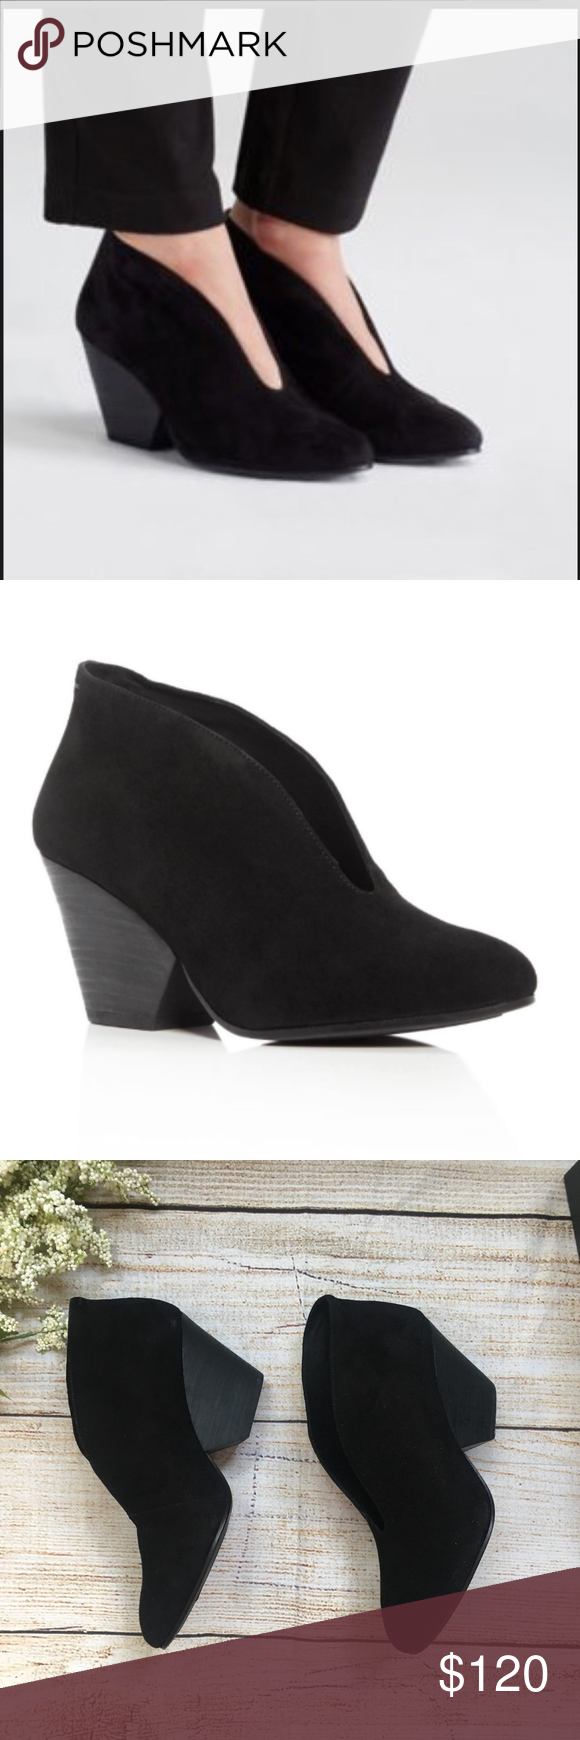 ba397679443c Eileen Fisher Iman Cut out Wedge Booties black 9 Great booties by Eileen  Fisher! New in Box